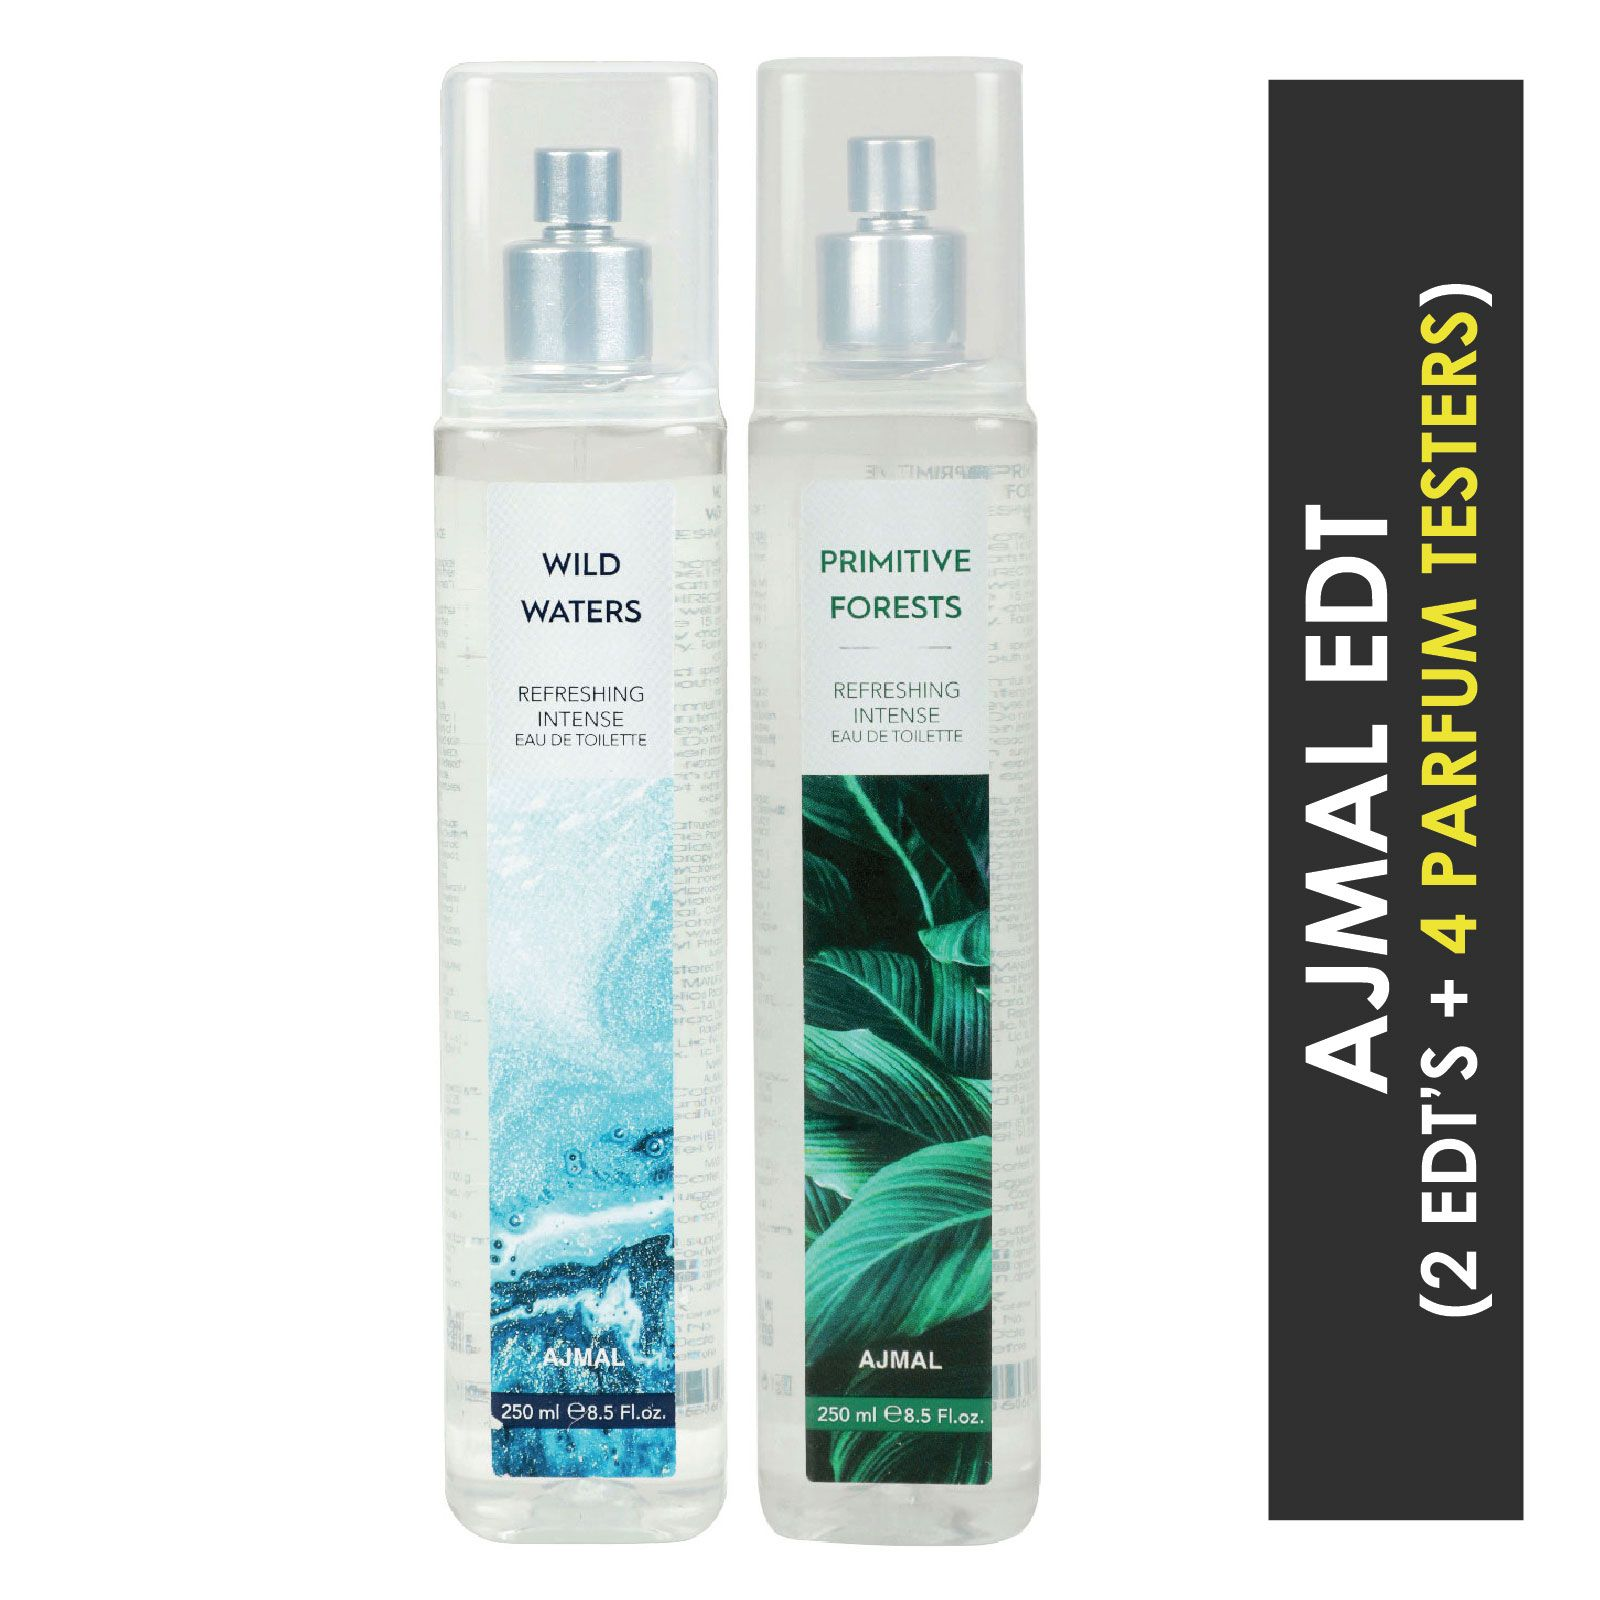 Ajmal | Ajmal Wild Waters & Primitive Forests EDT  pack of 2 each 250ml (Total 500ML) for Unisex + 4 Parfum Testers